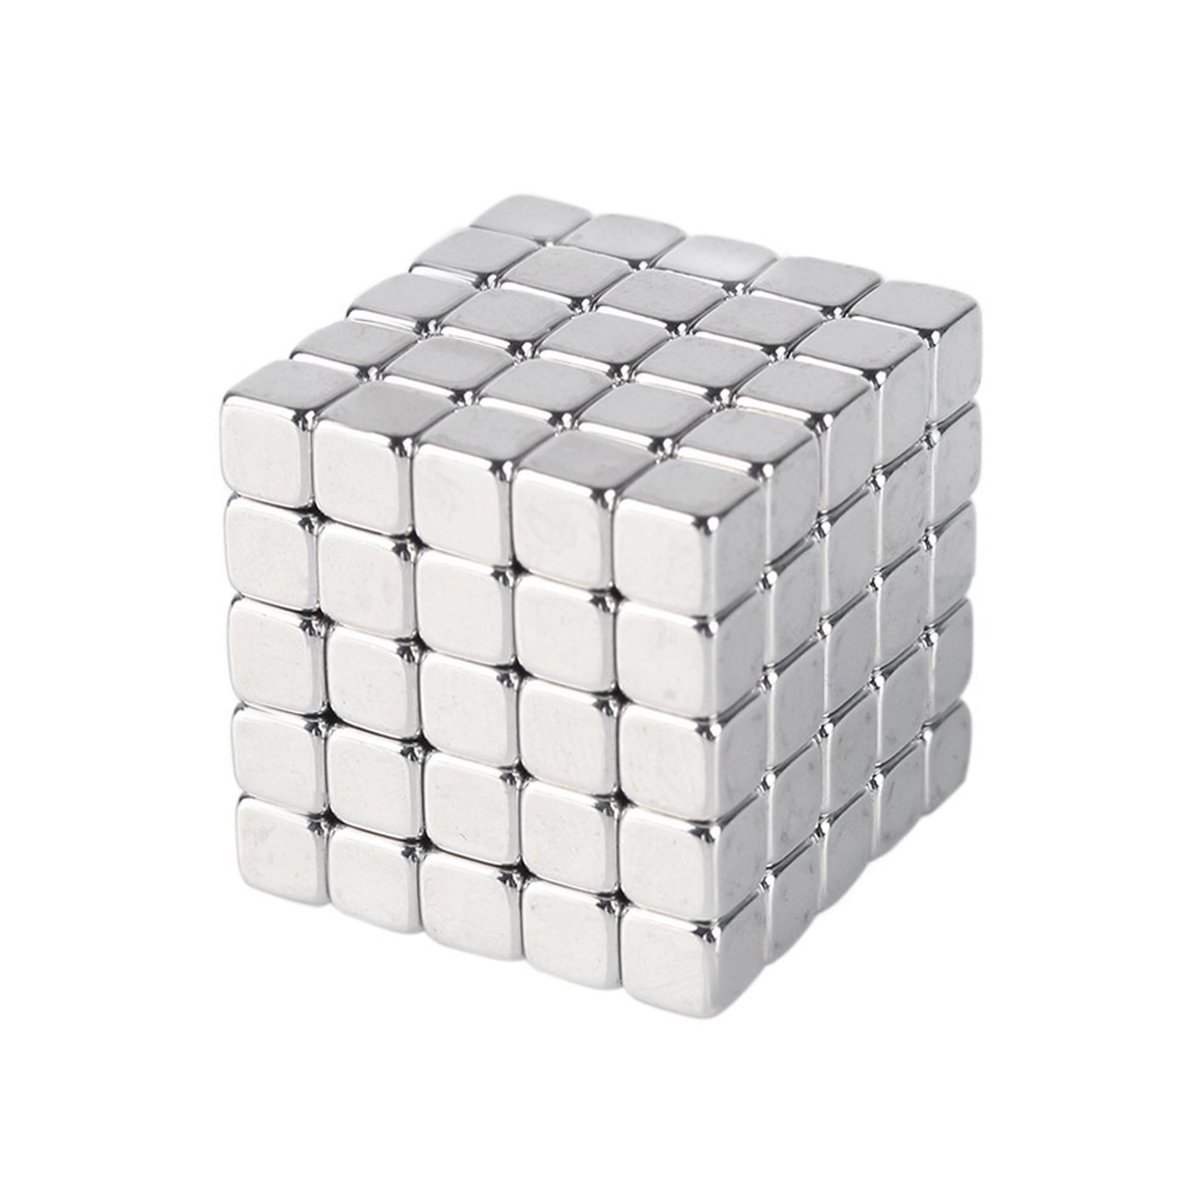 ELECFIND-Magnetic Cubes Metal Square Cube for Brushed Nickel Pawn Style Magnetic Push,PerfectFridge, Office, Dry Erase Board Magnetic, Whiteboard, Map